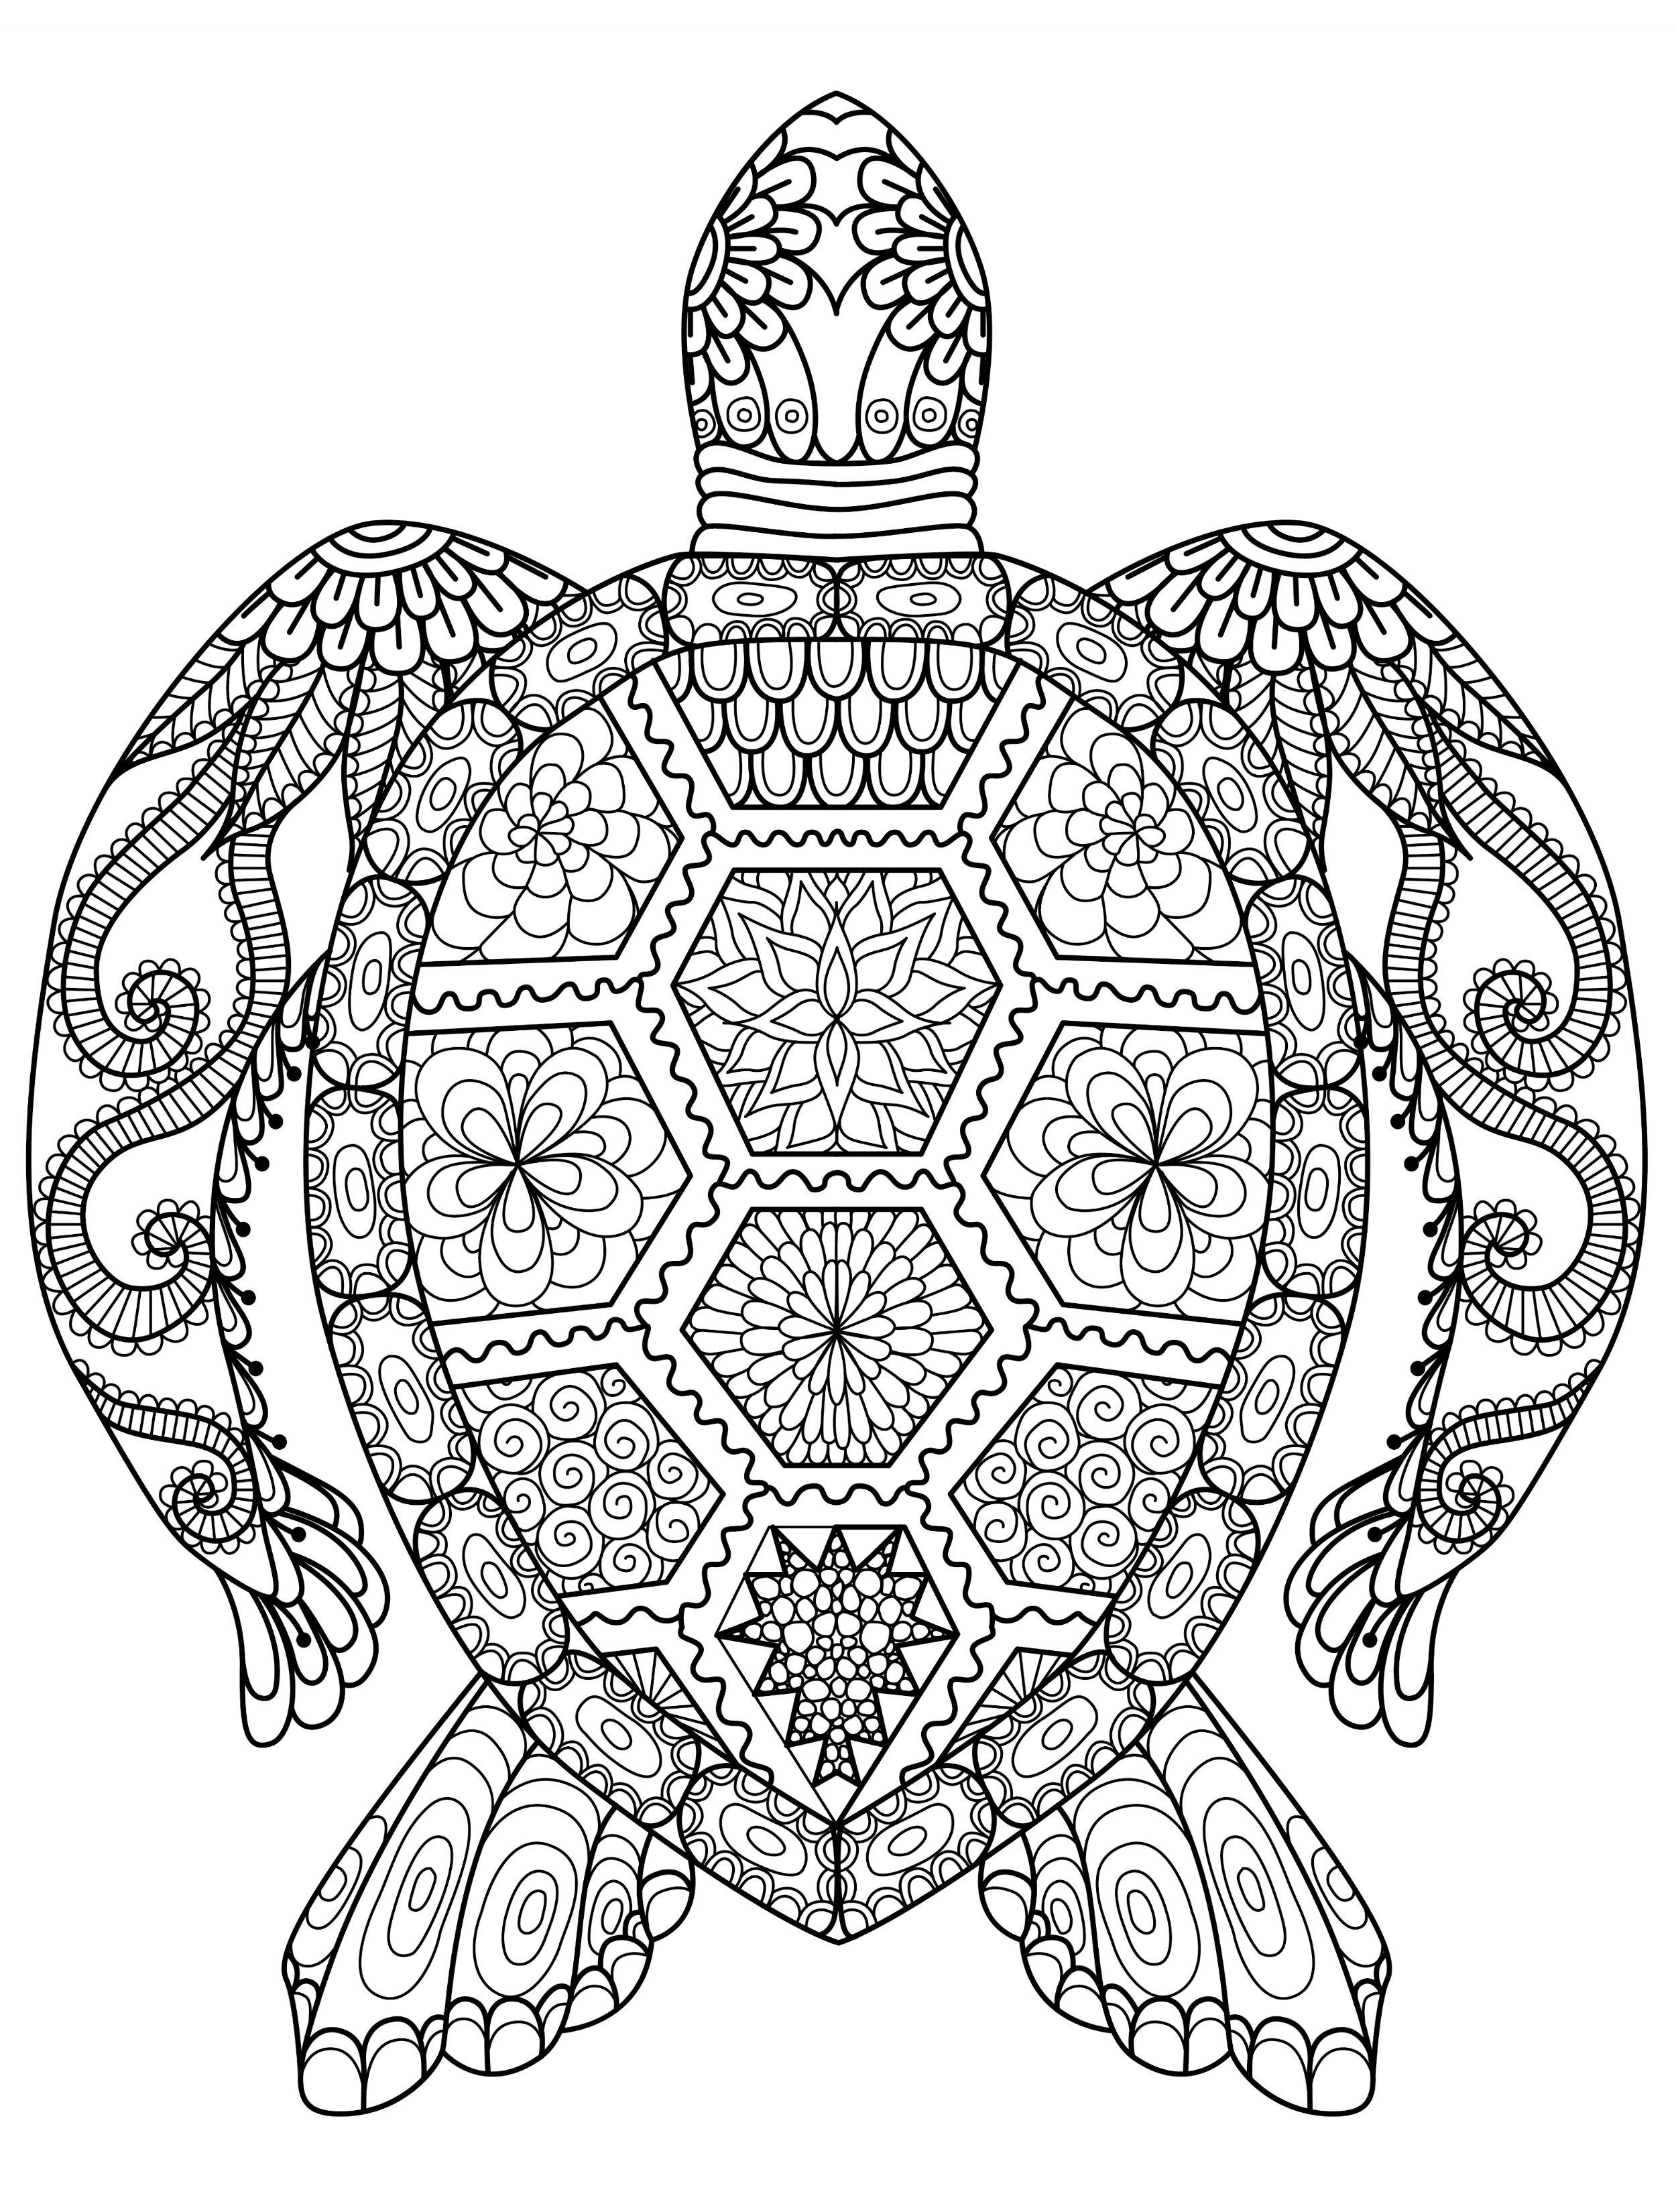 20 Gorgeous Free Printable Adult Coloring Pages | Adult ...